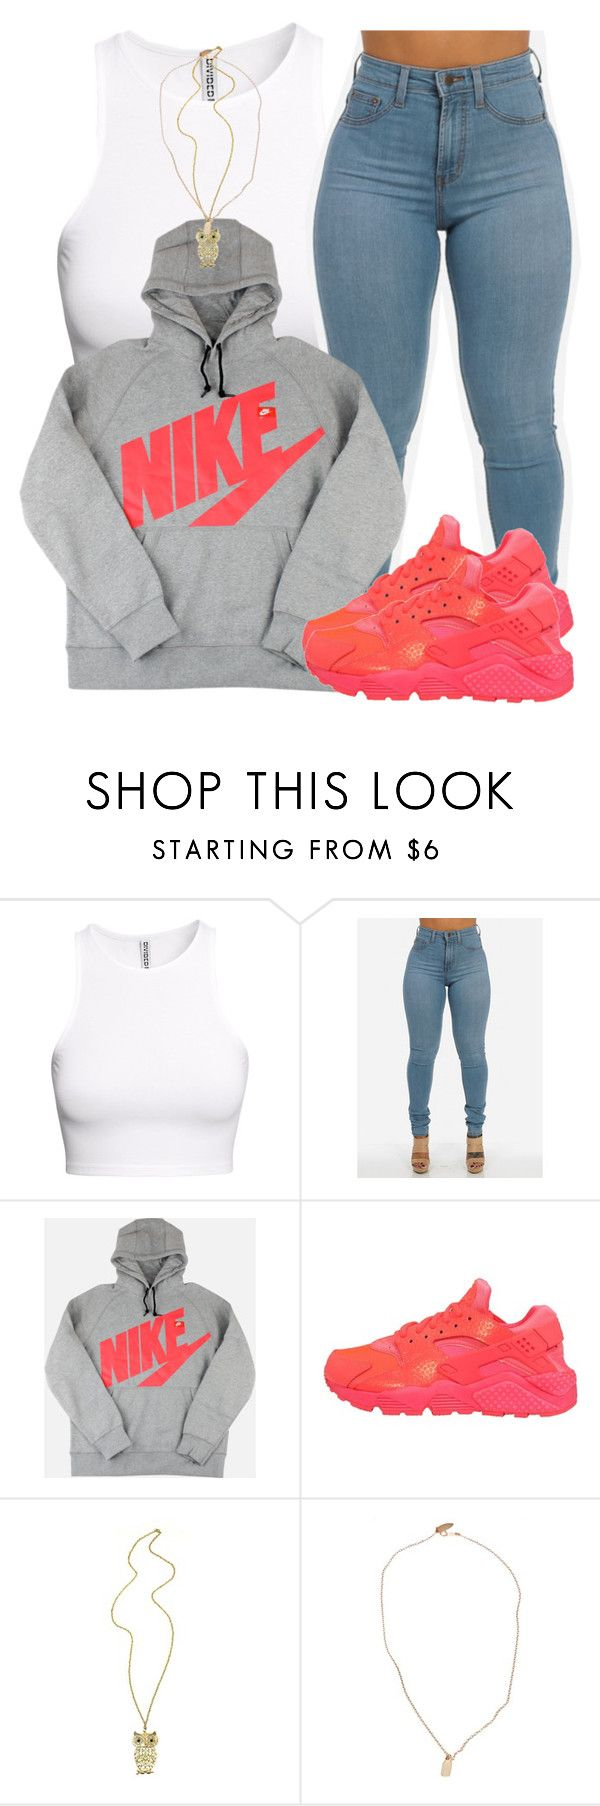 """11/23/15"" by clickk-mee ❤ liked on Polyvore featuring H&M, NIKE and Devon Pavlovits"